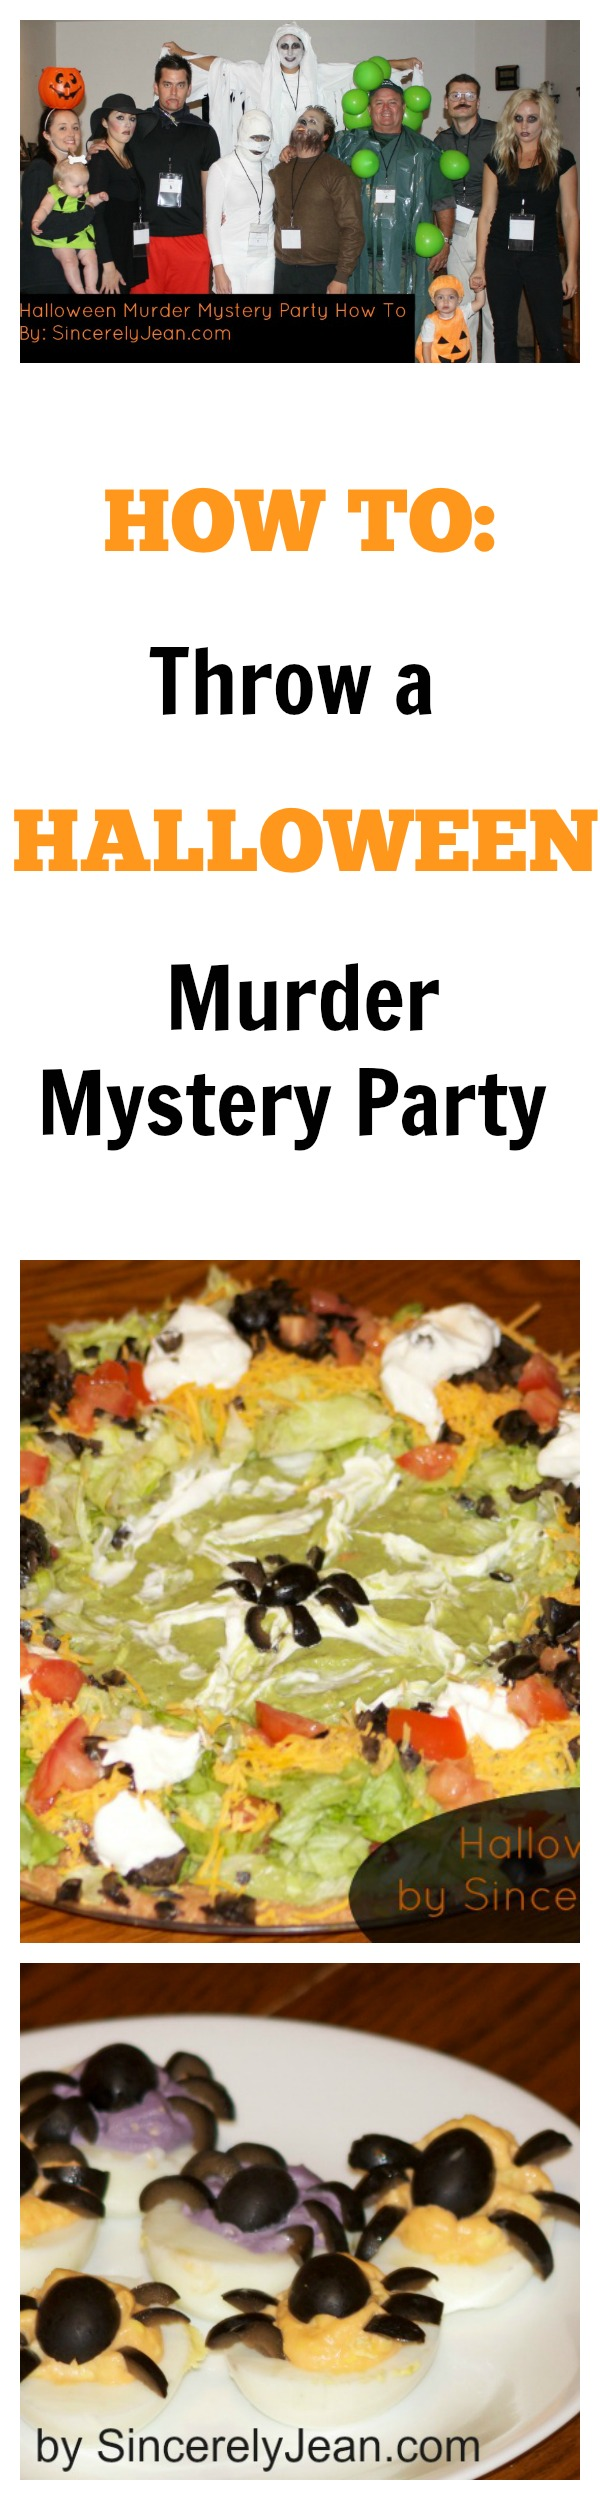 how to throw a halloween murder mystery party - sincerely jean